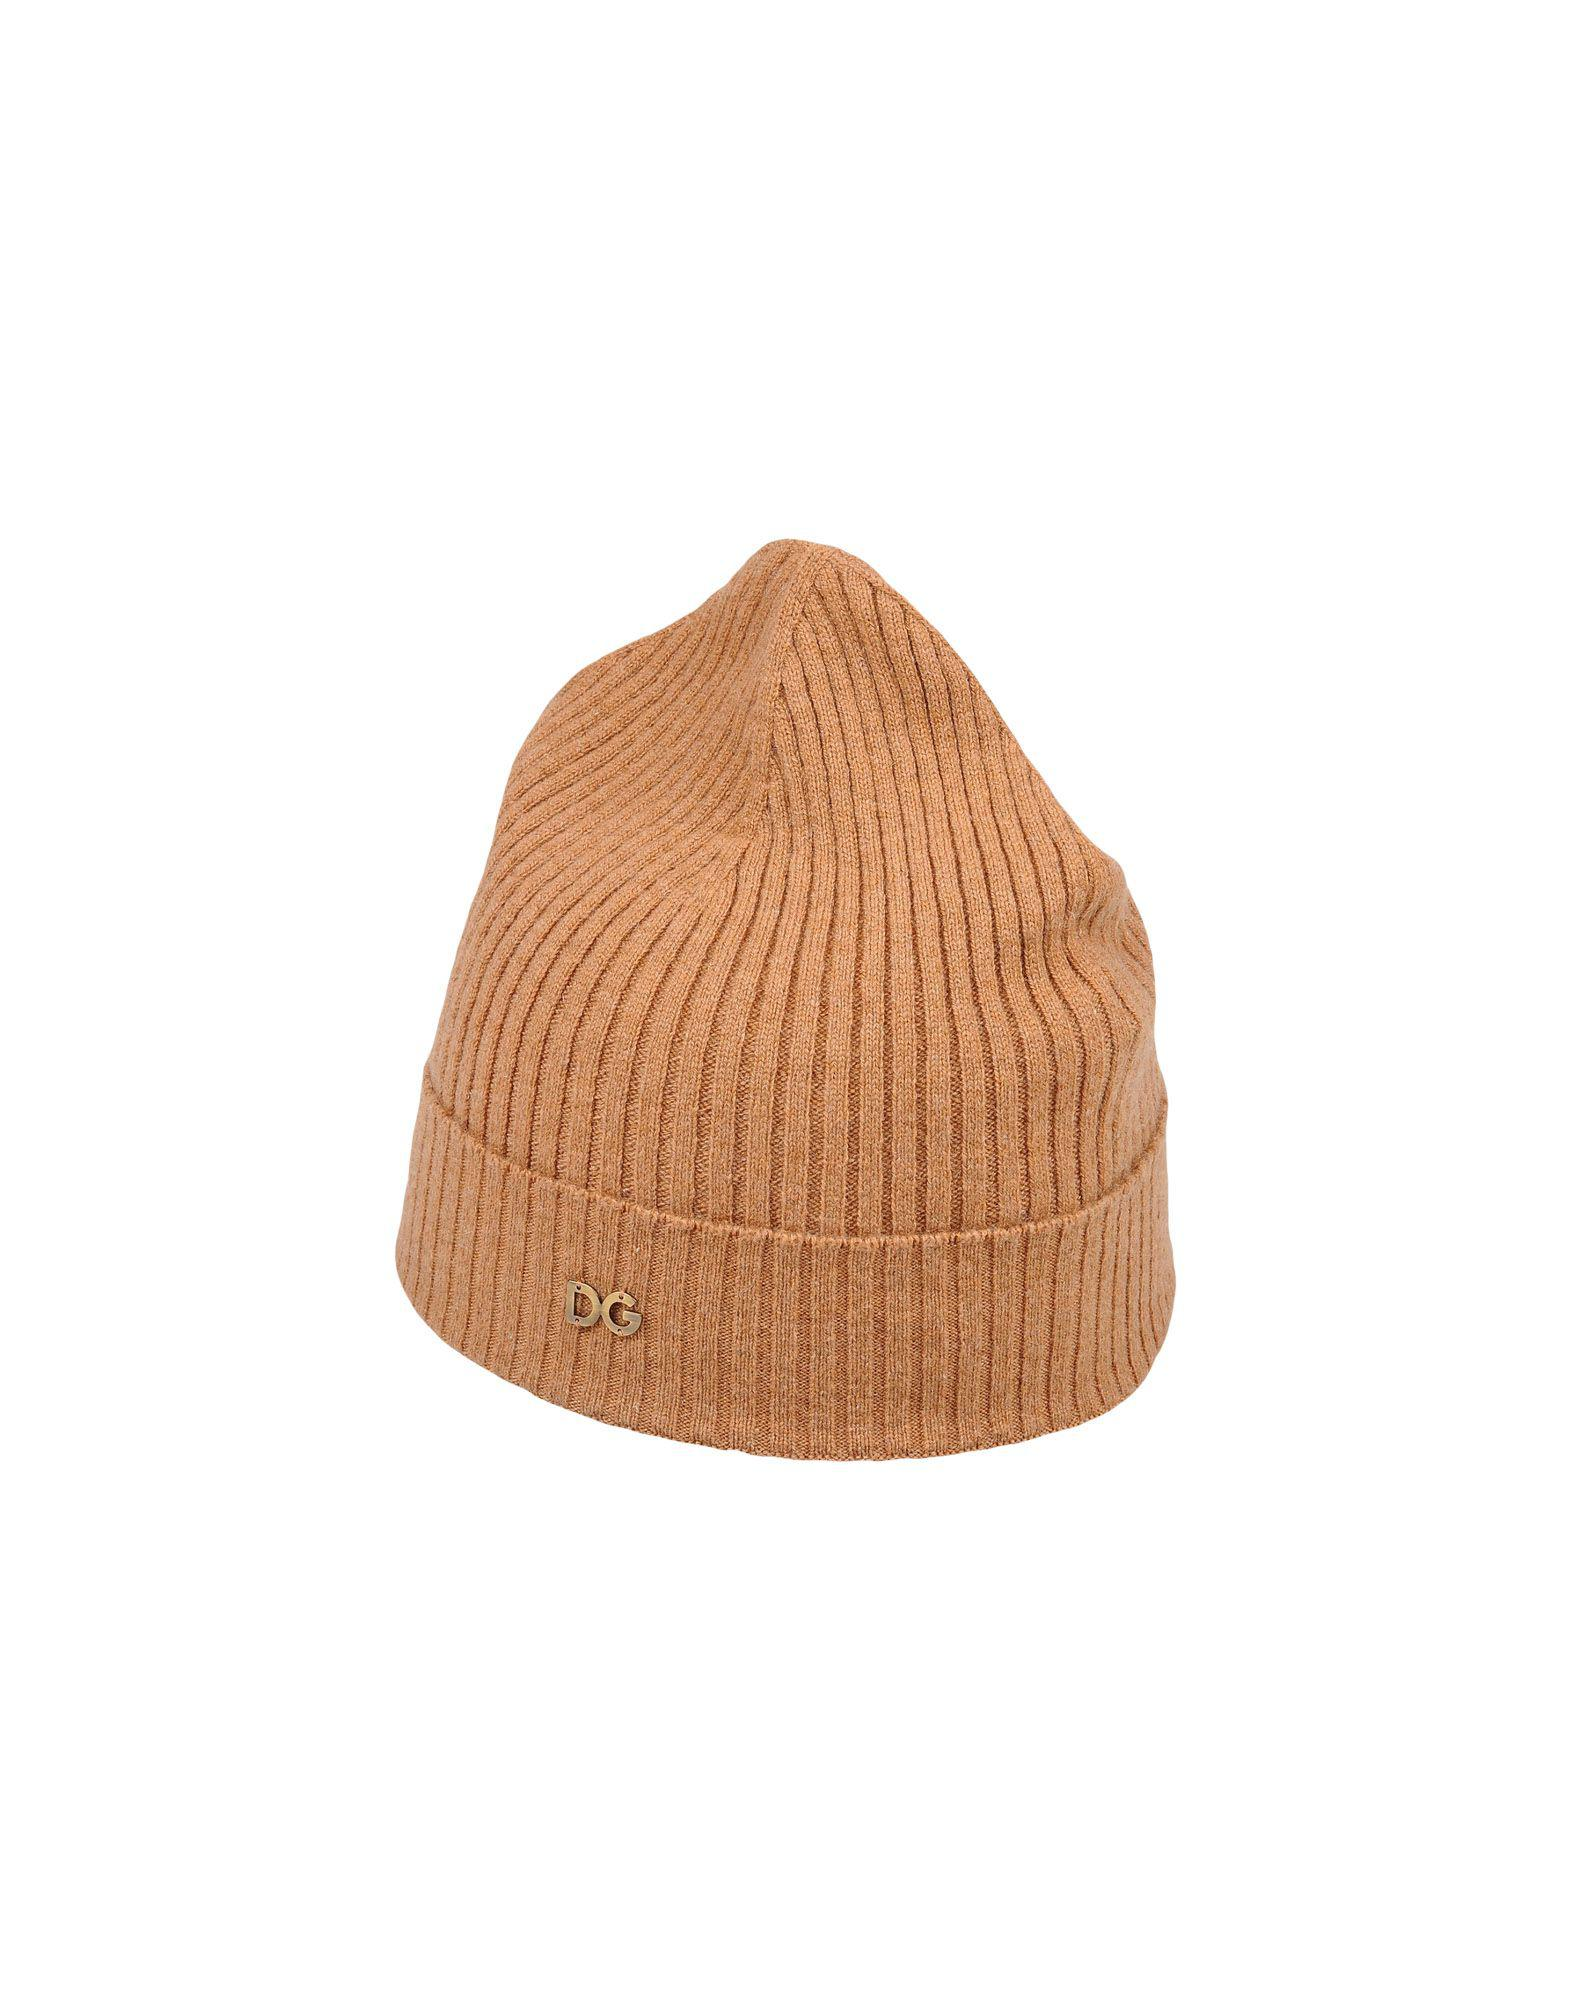 9fb9f0144d4 Lyst - Dolce   Gabbana Hats in Brown